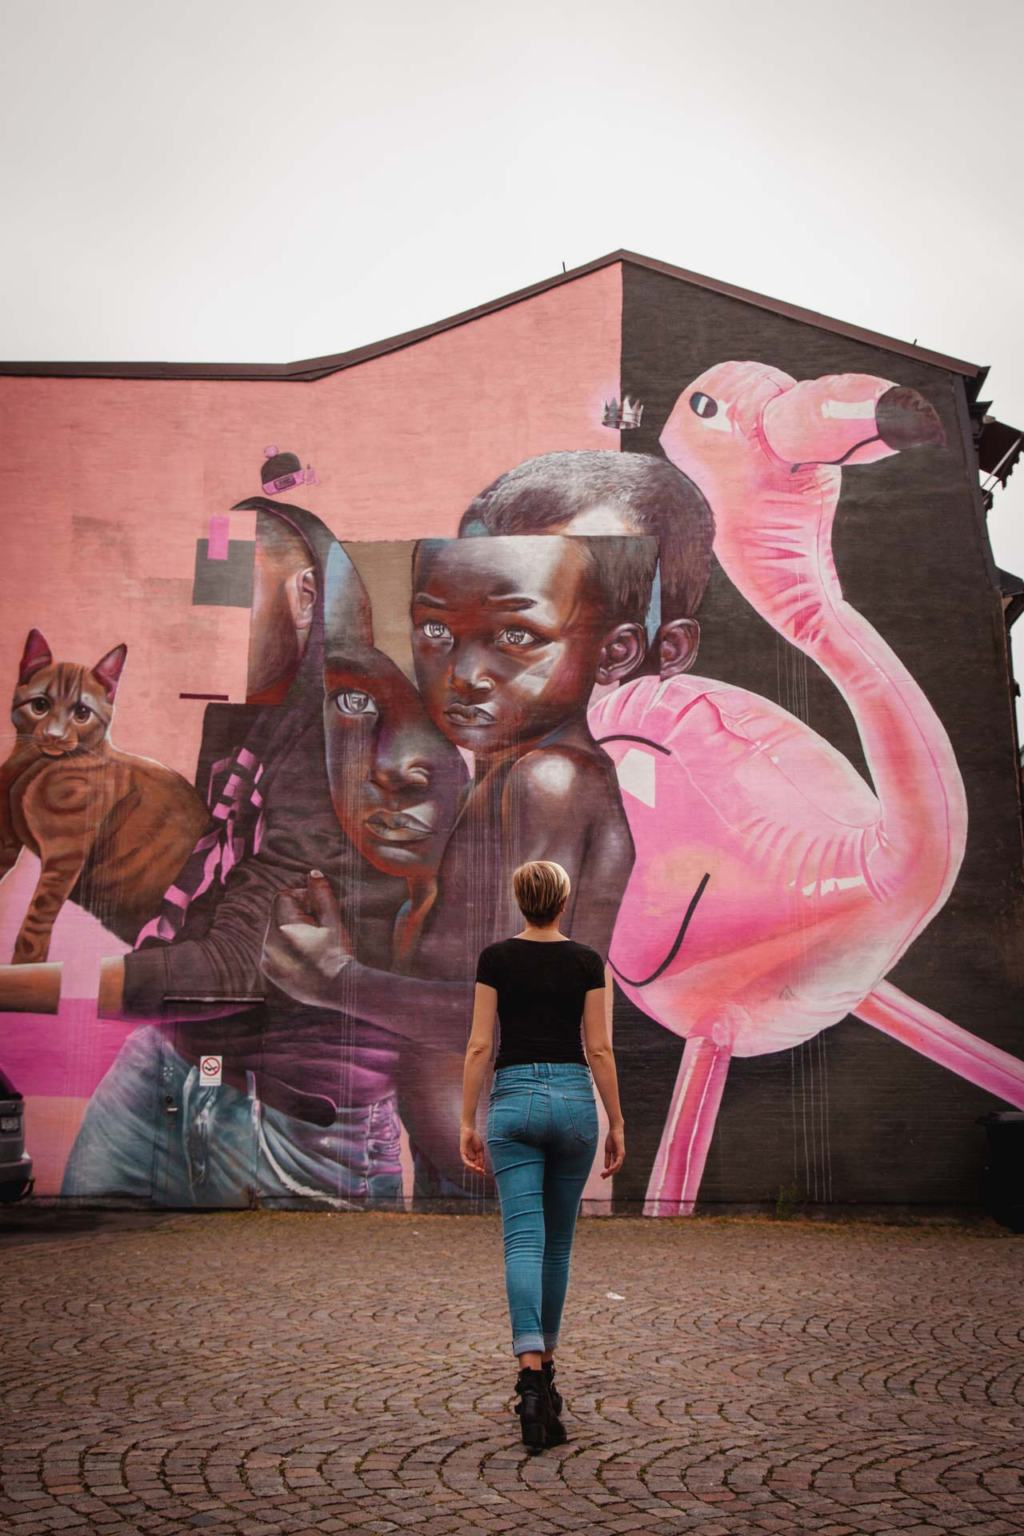 Helsingborg Street Art, In the land of grey and pink, Telmo Miel, Skåne, Sweden